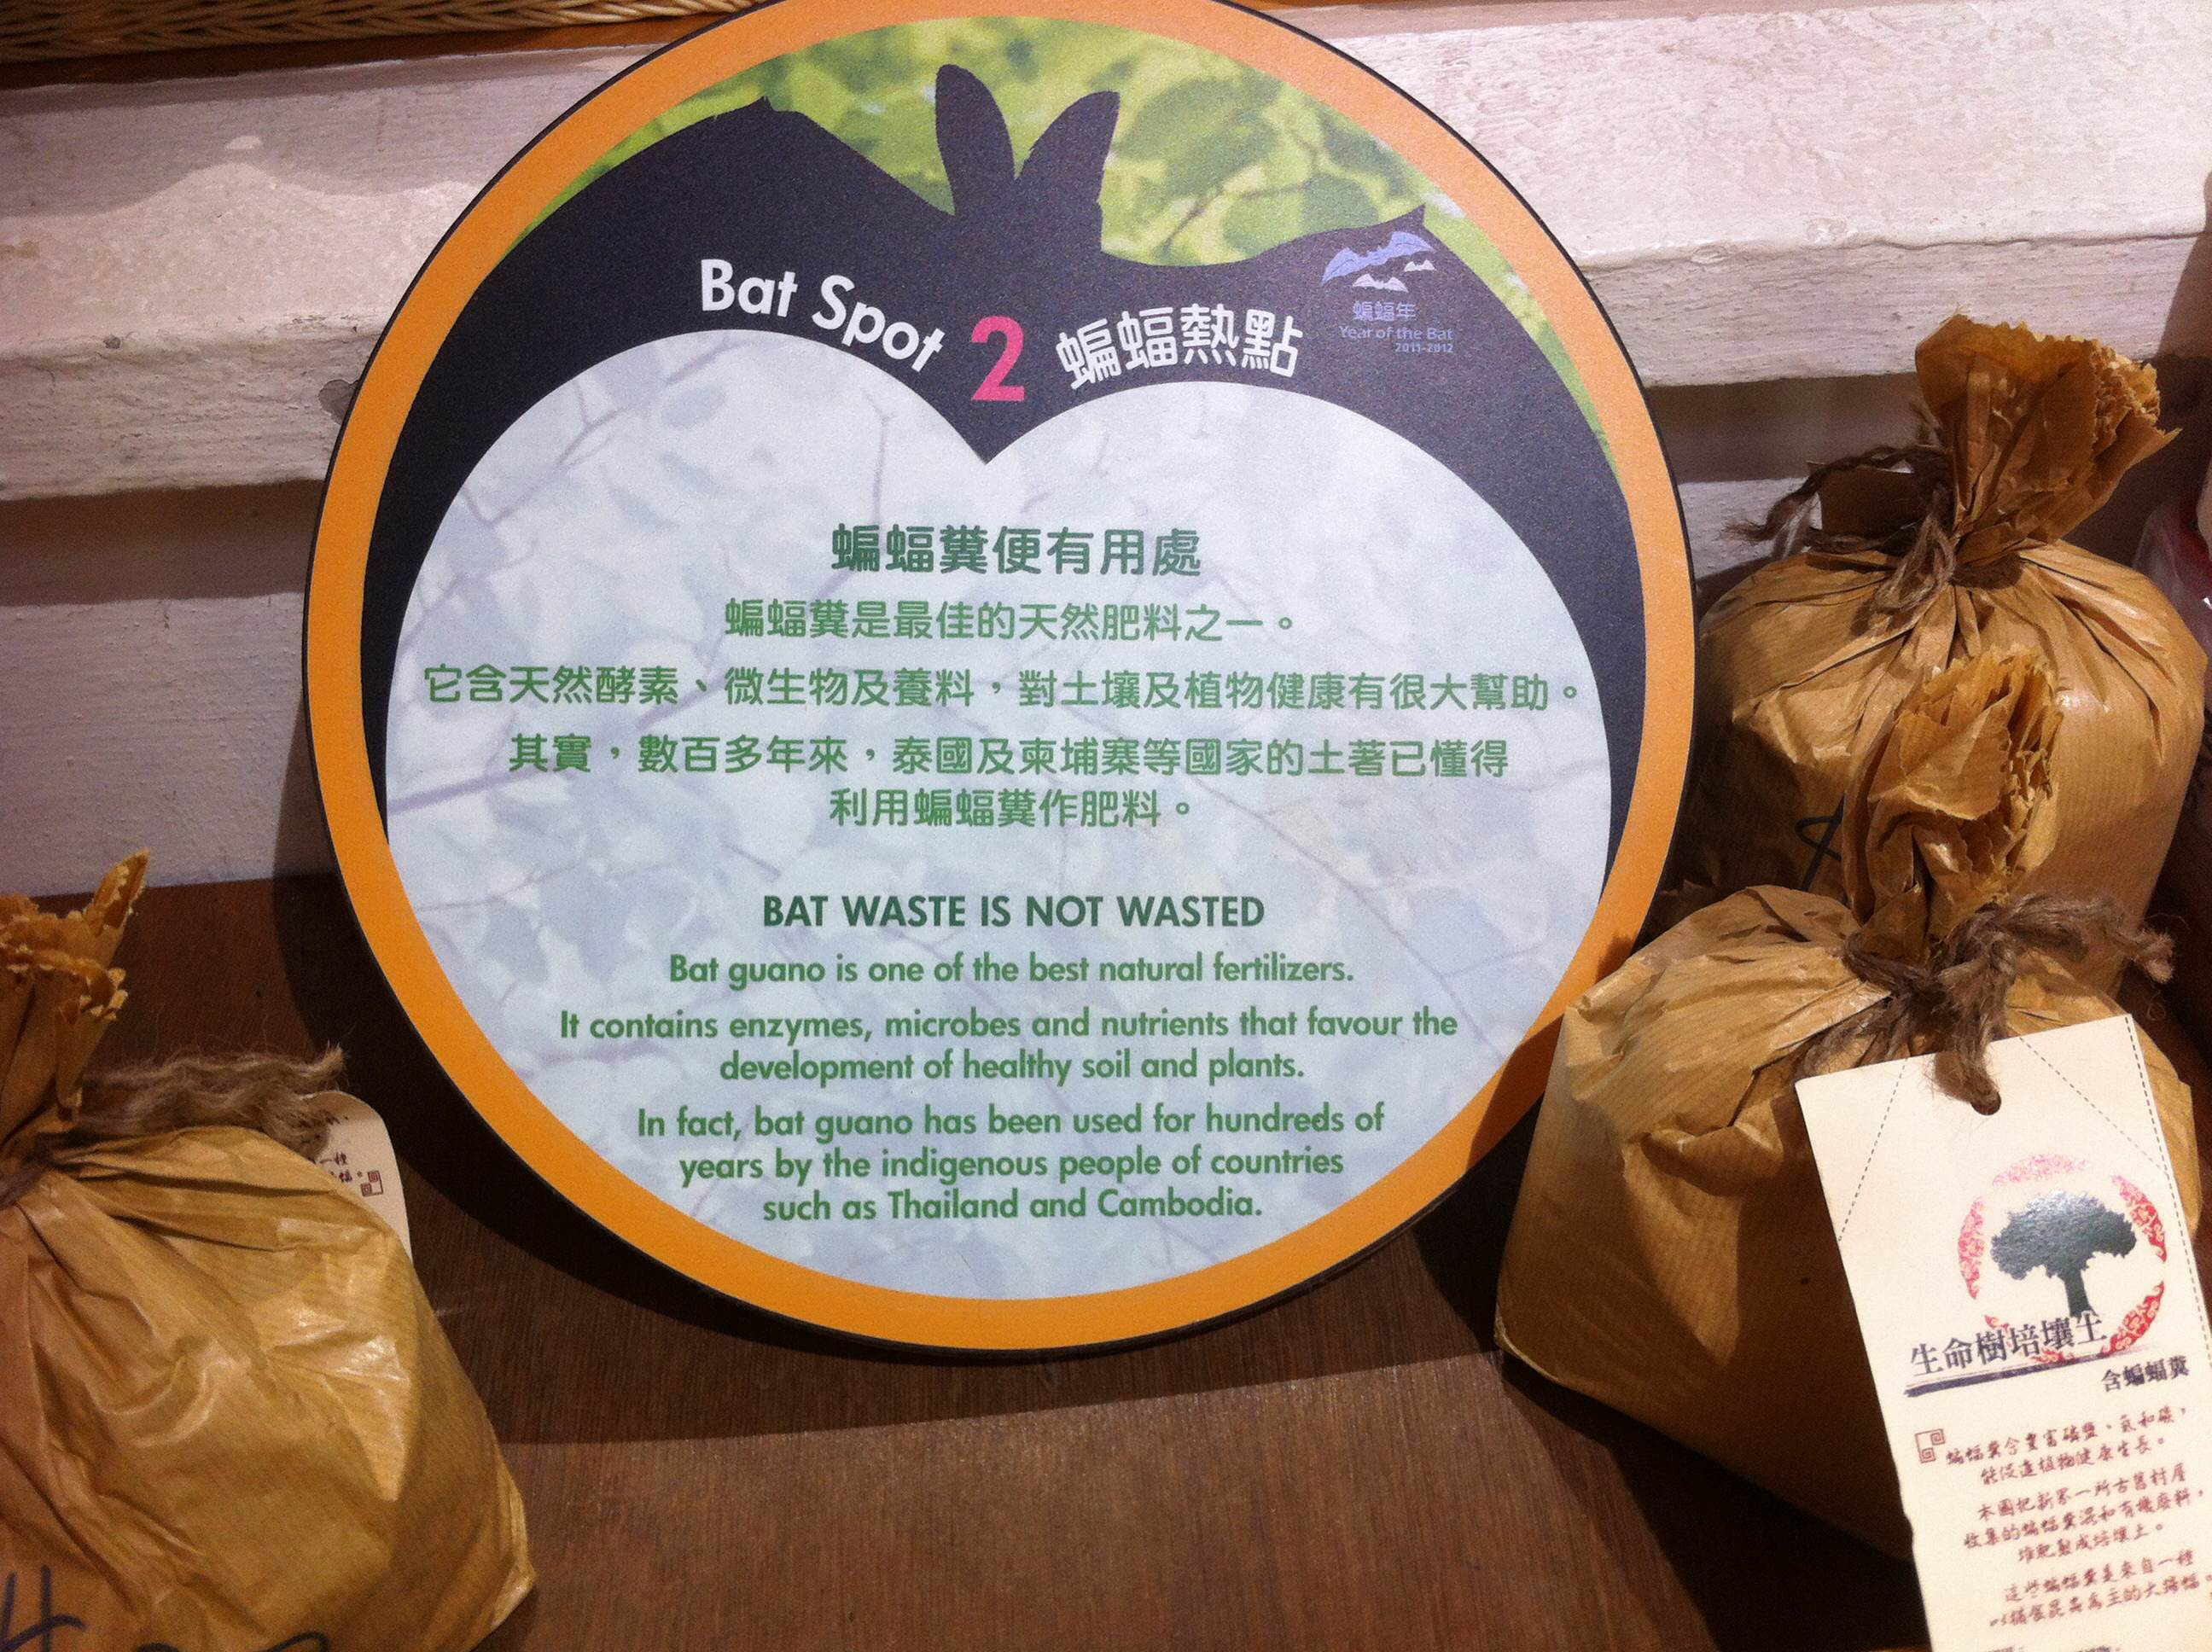 A sign in The Farm Shop explaining the use of bat guana in farming.